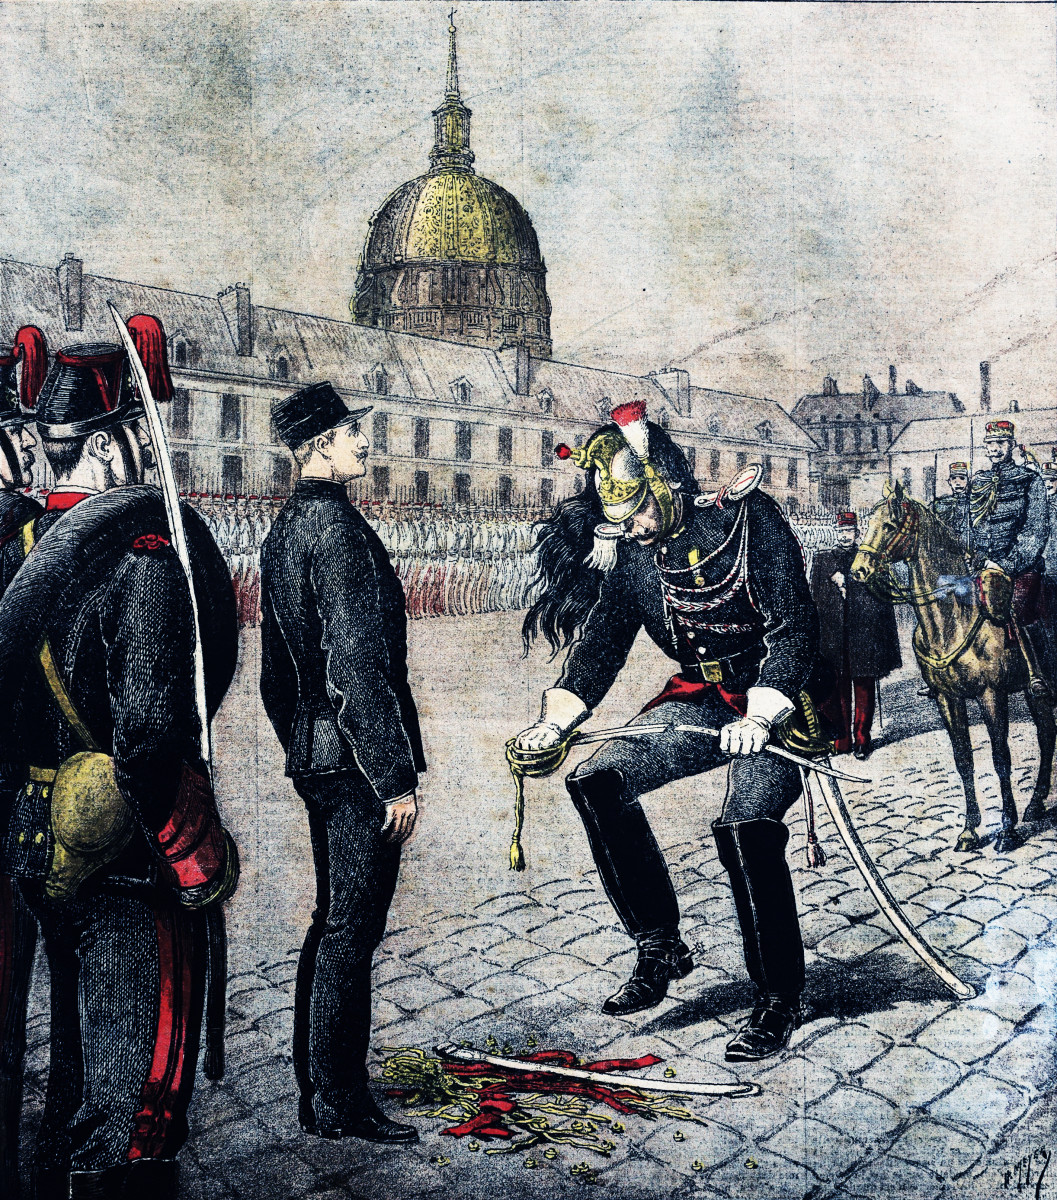 The Dreyfus affair, where a French Jewish artillery officer was accused of spying for Germany, polarized French civil-military relations and led to repressions of the army.